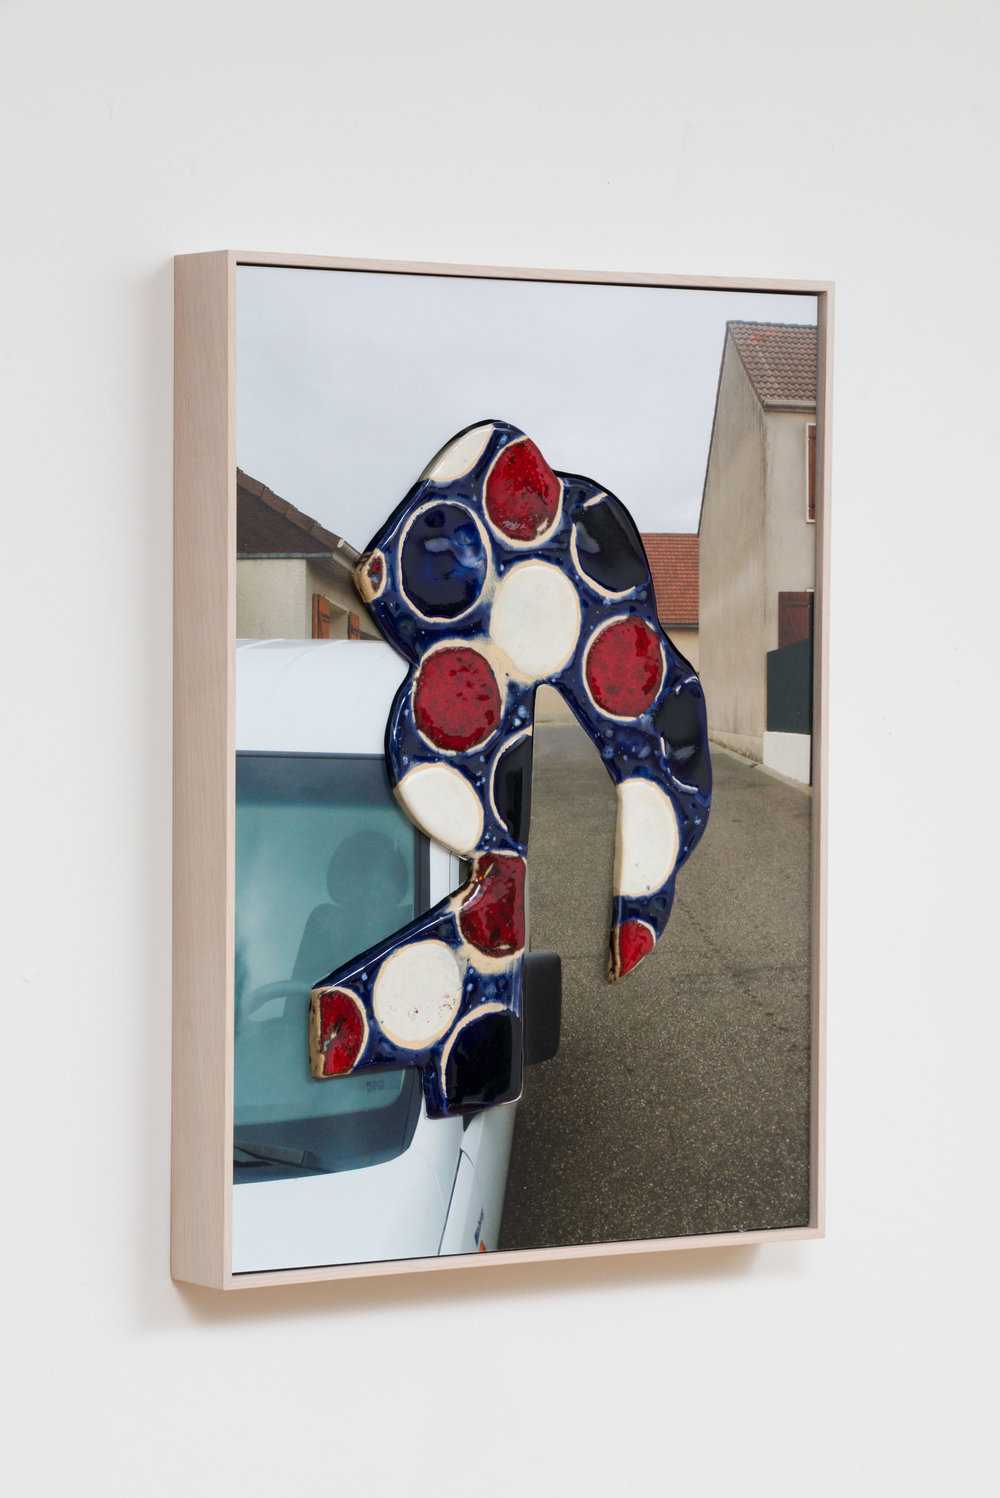 Denis Darzacq,  Doublemix No. 9 , 2014  Digital pigment print with earthenware insert, 18.5 x 14 x 1.75 in (approx. 47 × 36 x 4 cm), unique   Inquire